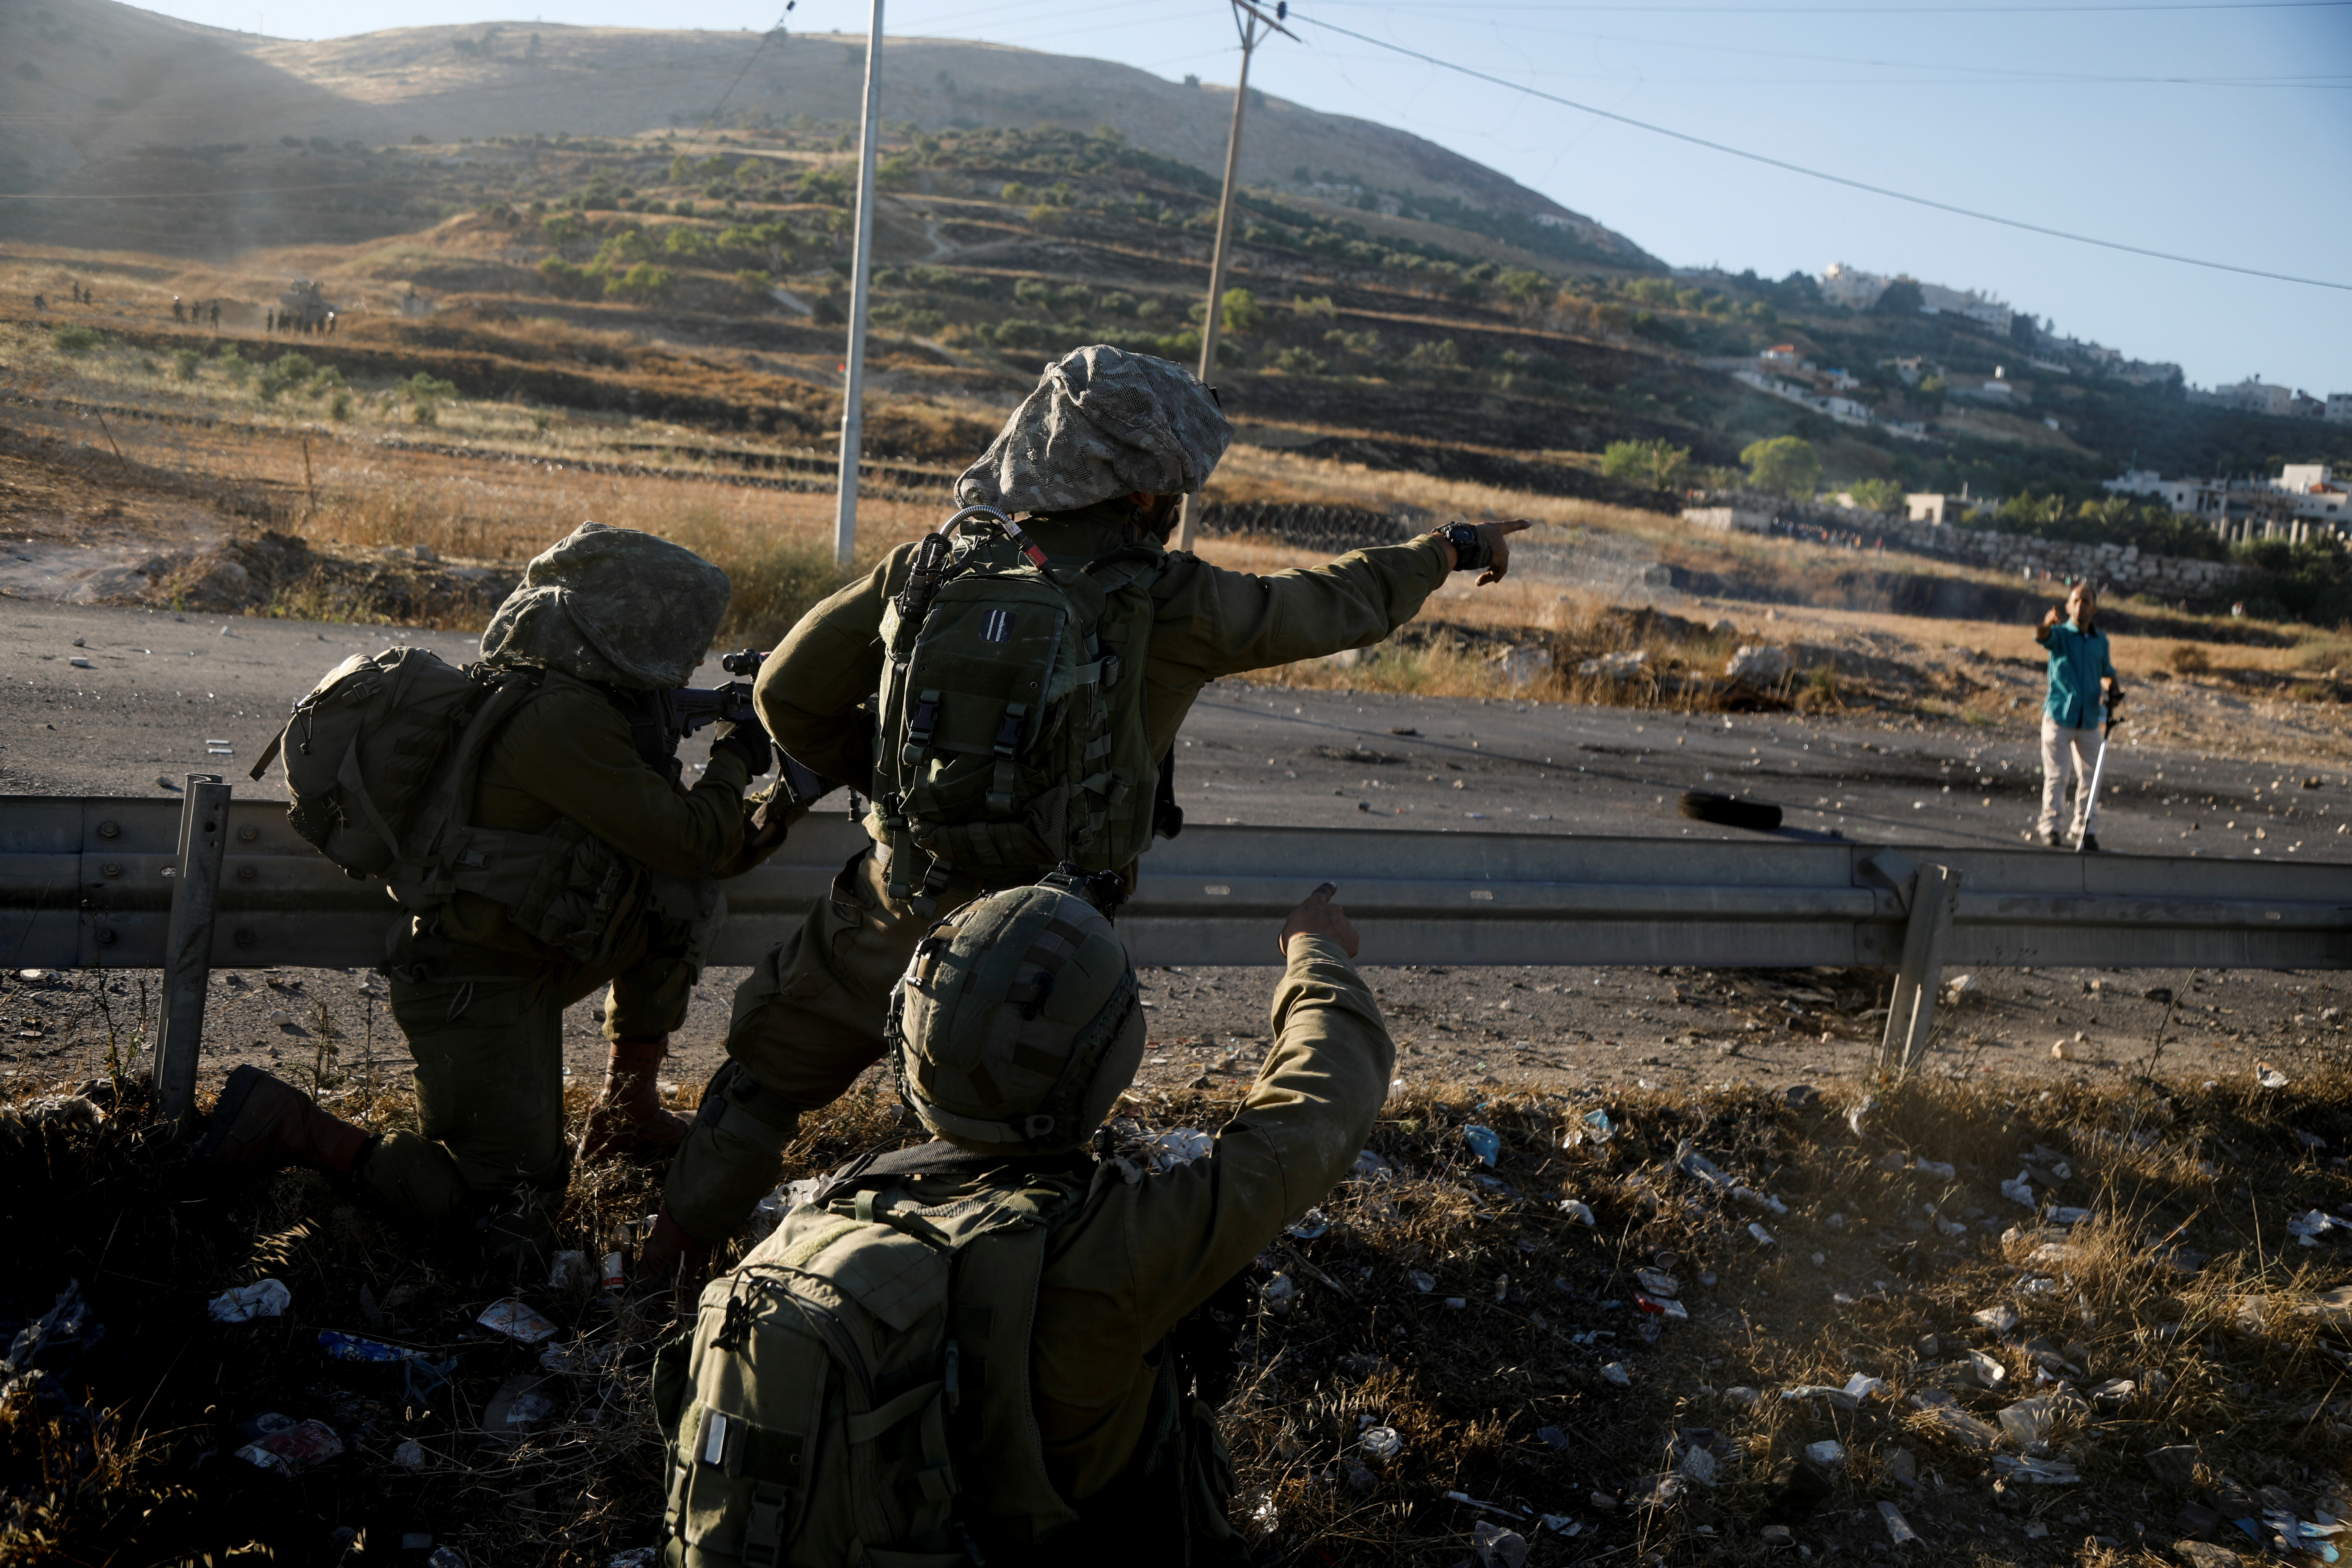 Israel's soldiers talk to a Palestine during an anti-Israel protest over cross-border violence between Palestinian militants in Gaza and the Israeli military, near Hawara checkpoint near Nablus in the Israeli-occupied West Bank, May 18, 2021. REUTERS/Raneen Sawafta